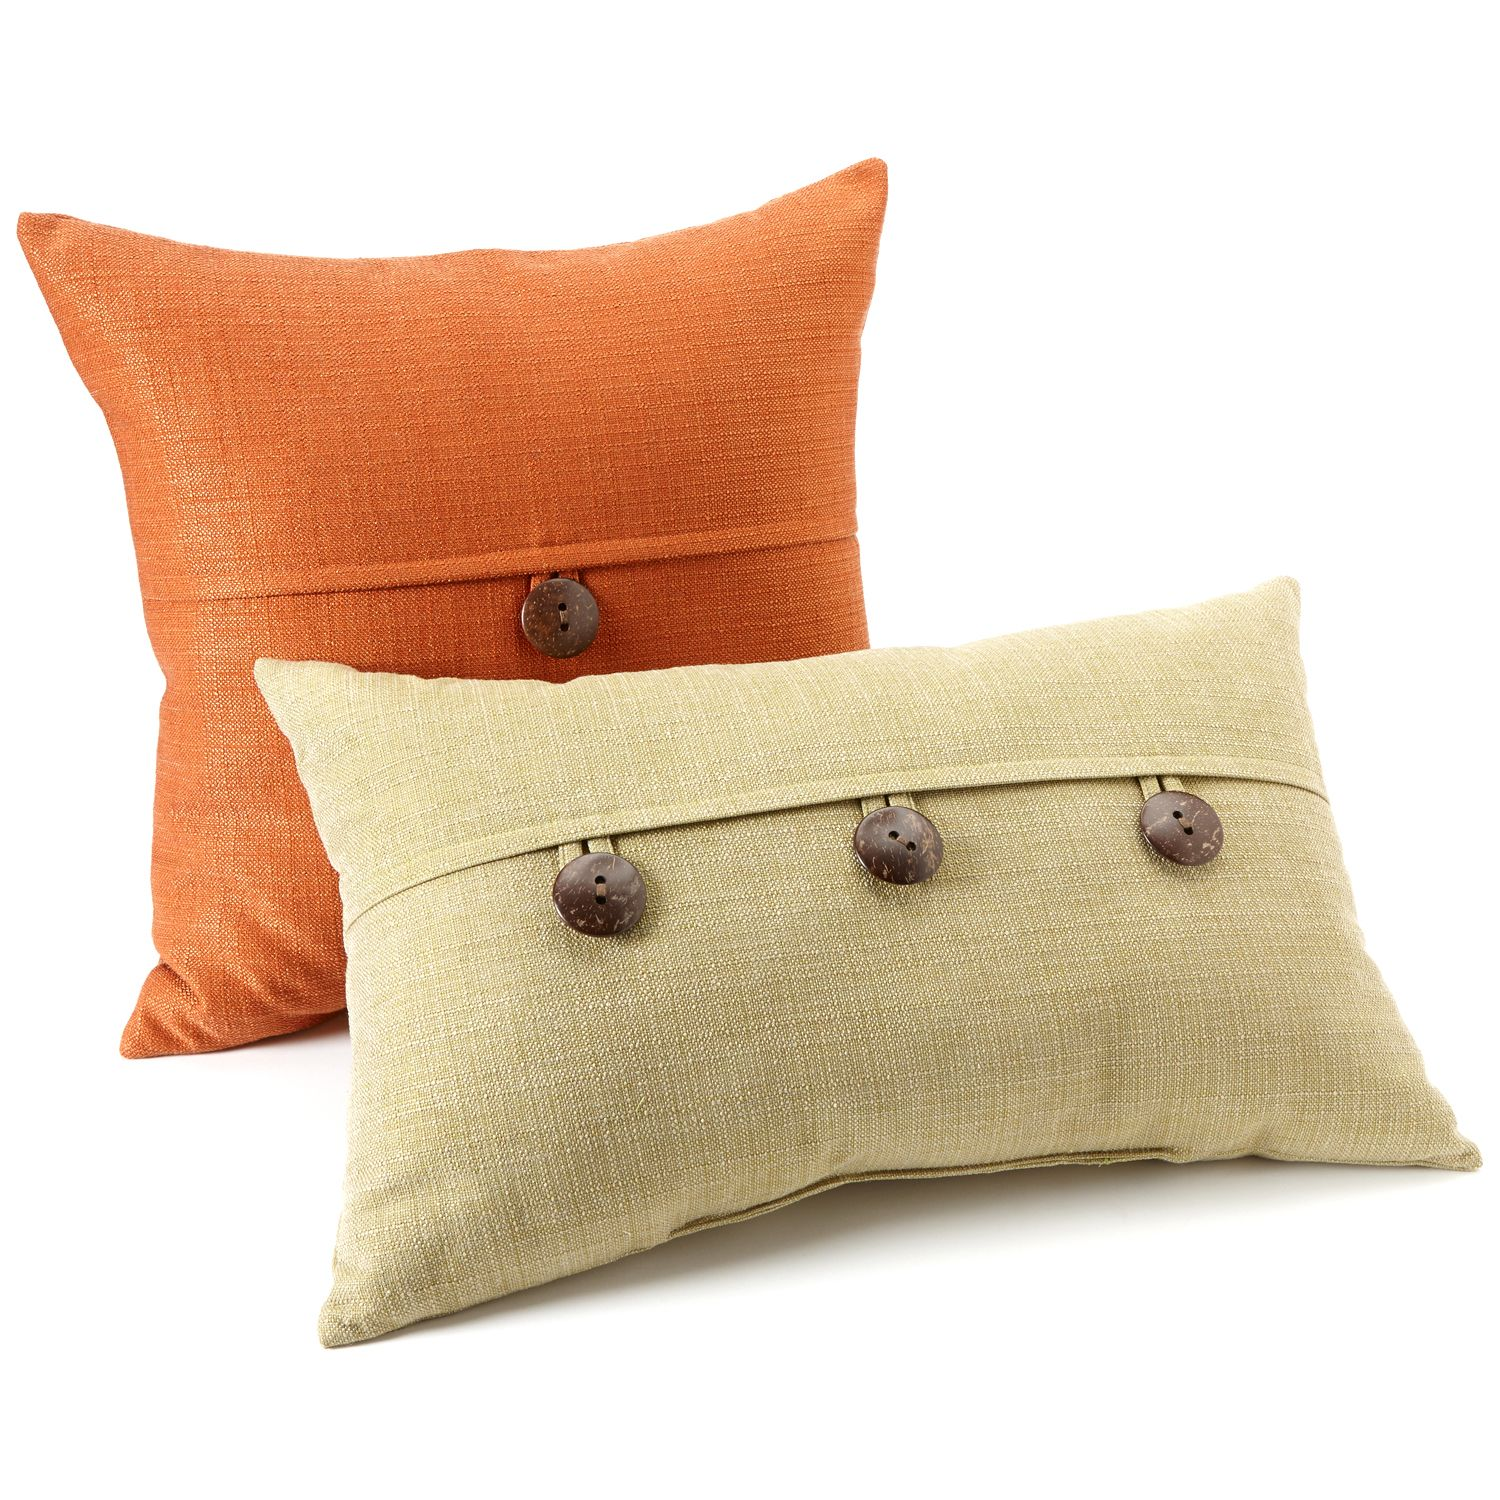 Throw PillowsDecorative PillowsChair Pads Home DecorKohls